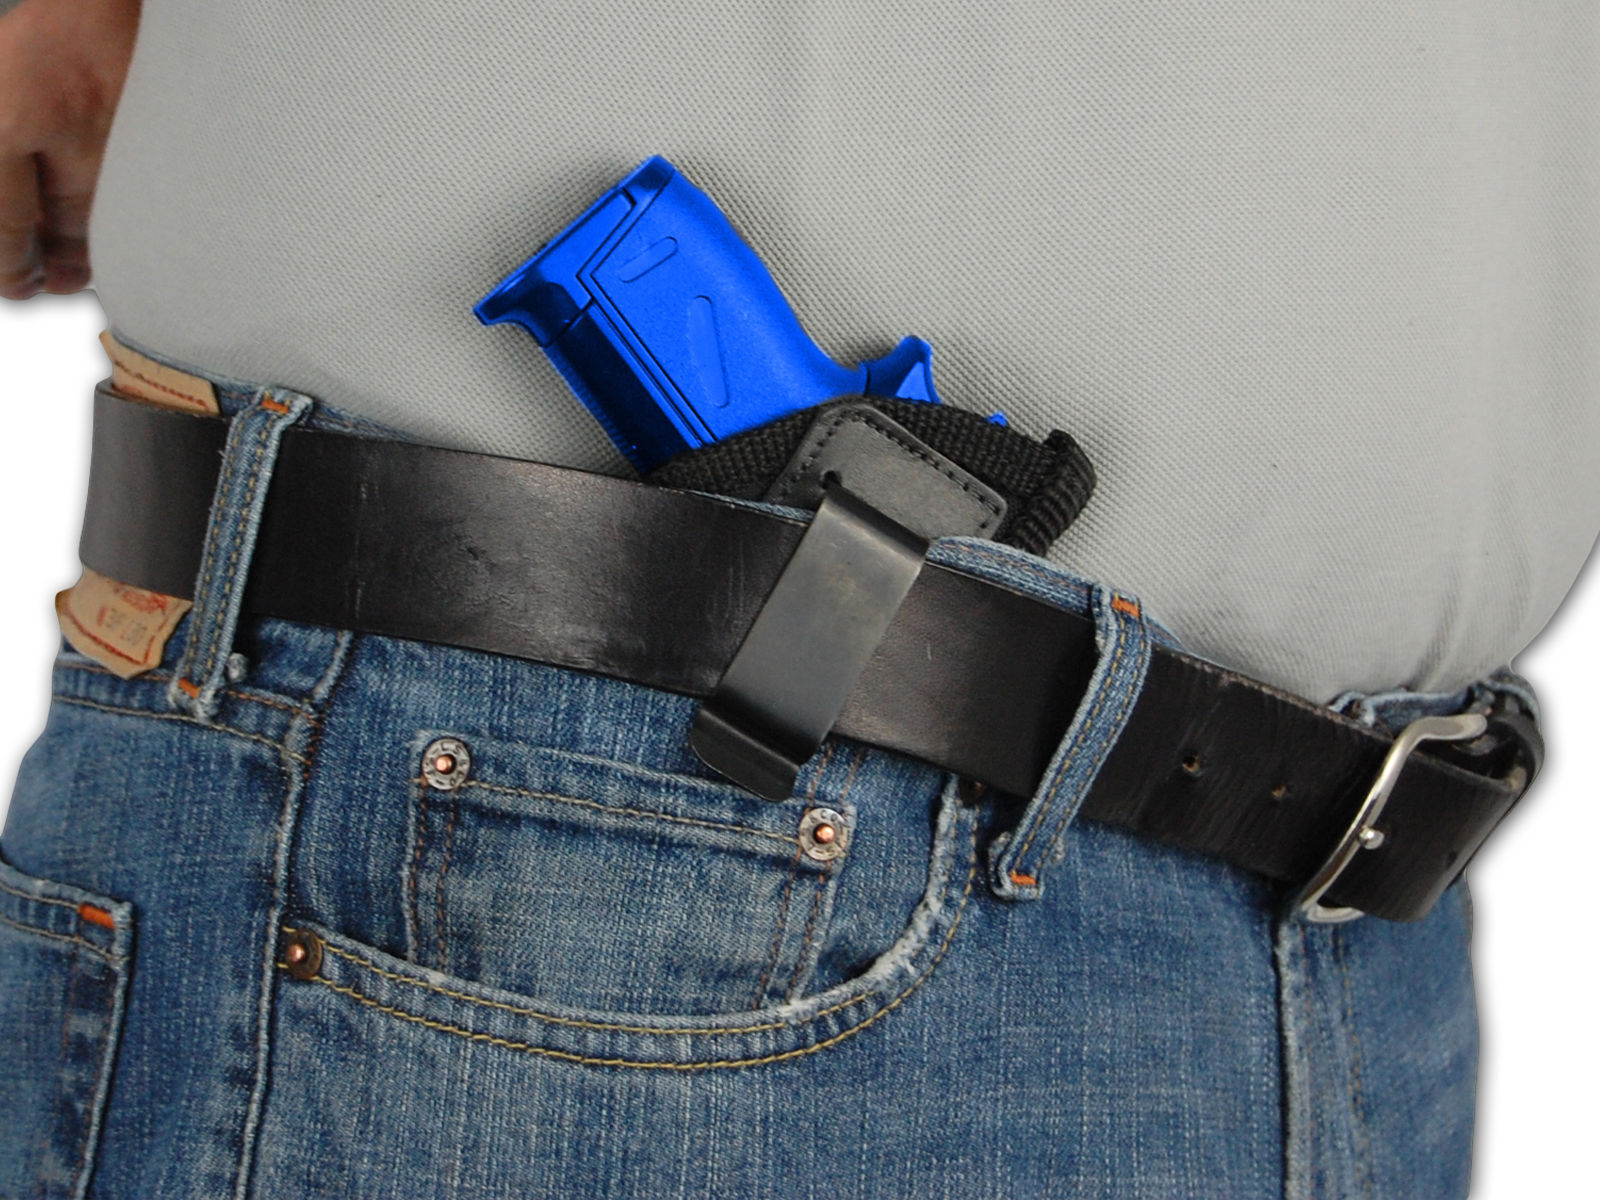 Barsony IWB Gun Concealment Holster for Beretta, Taurus Mini/Pocket 22 25 380